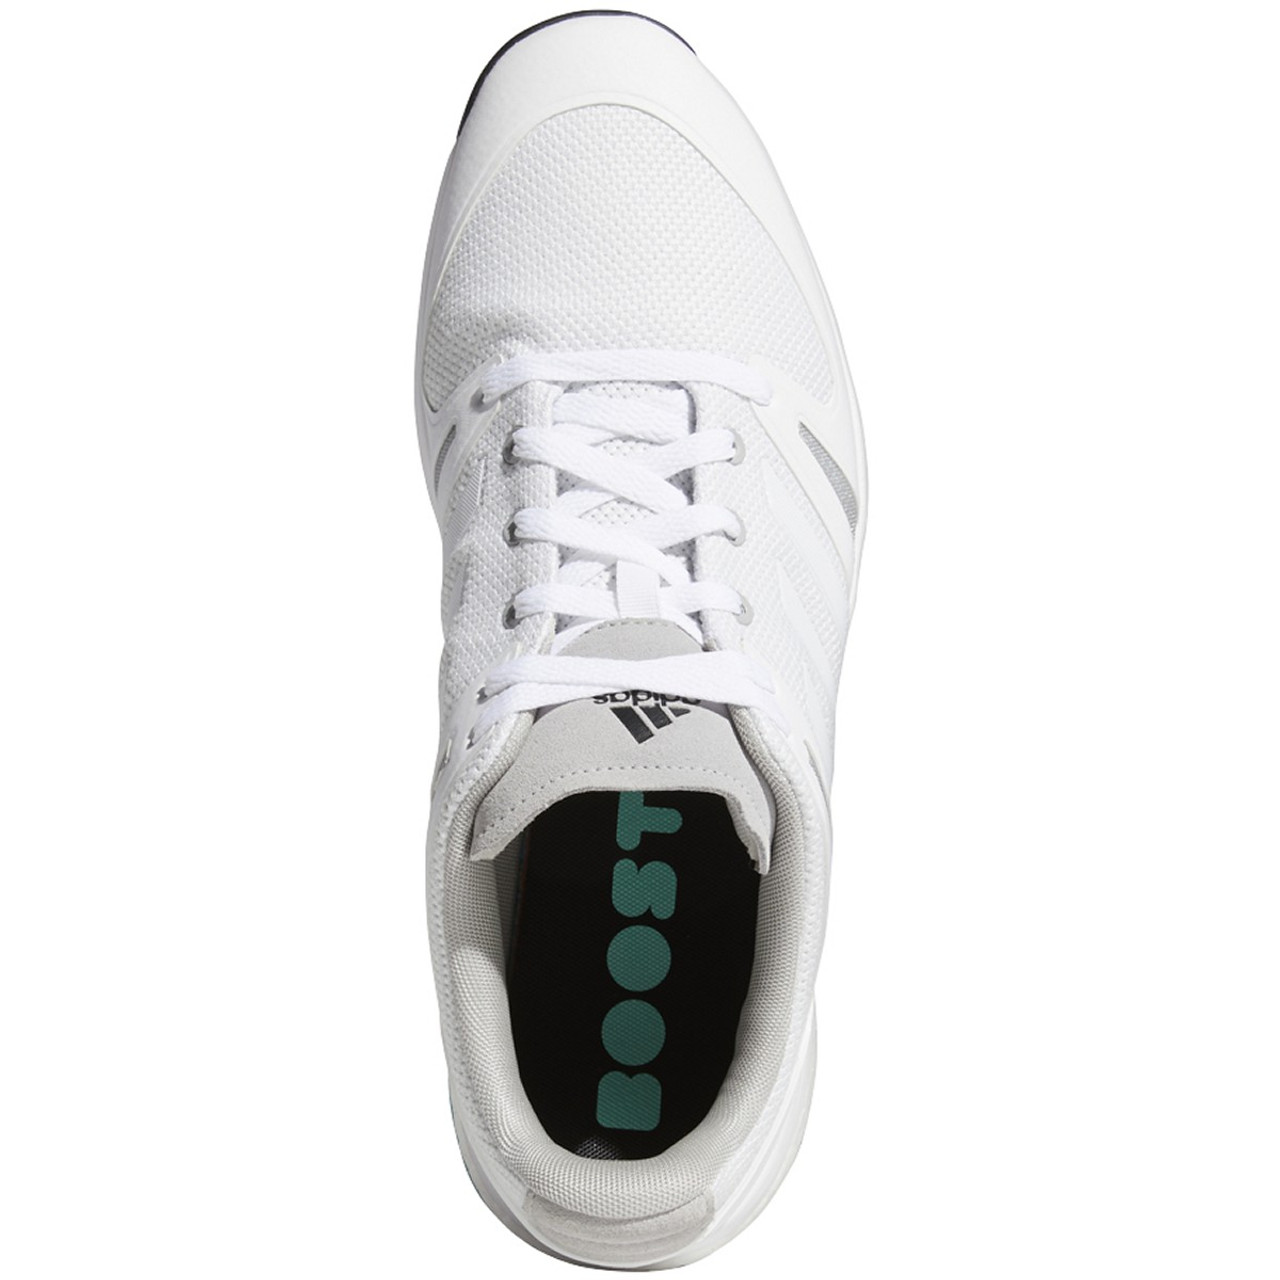 Adidas EQT Spikeless Golf Shoes - White / White / Grey Two